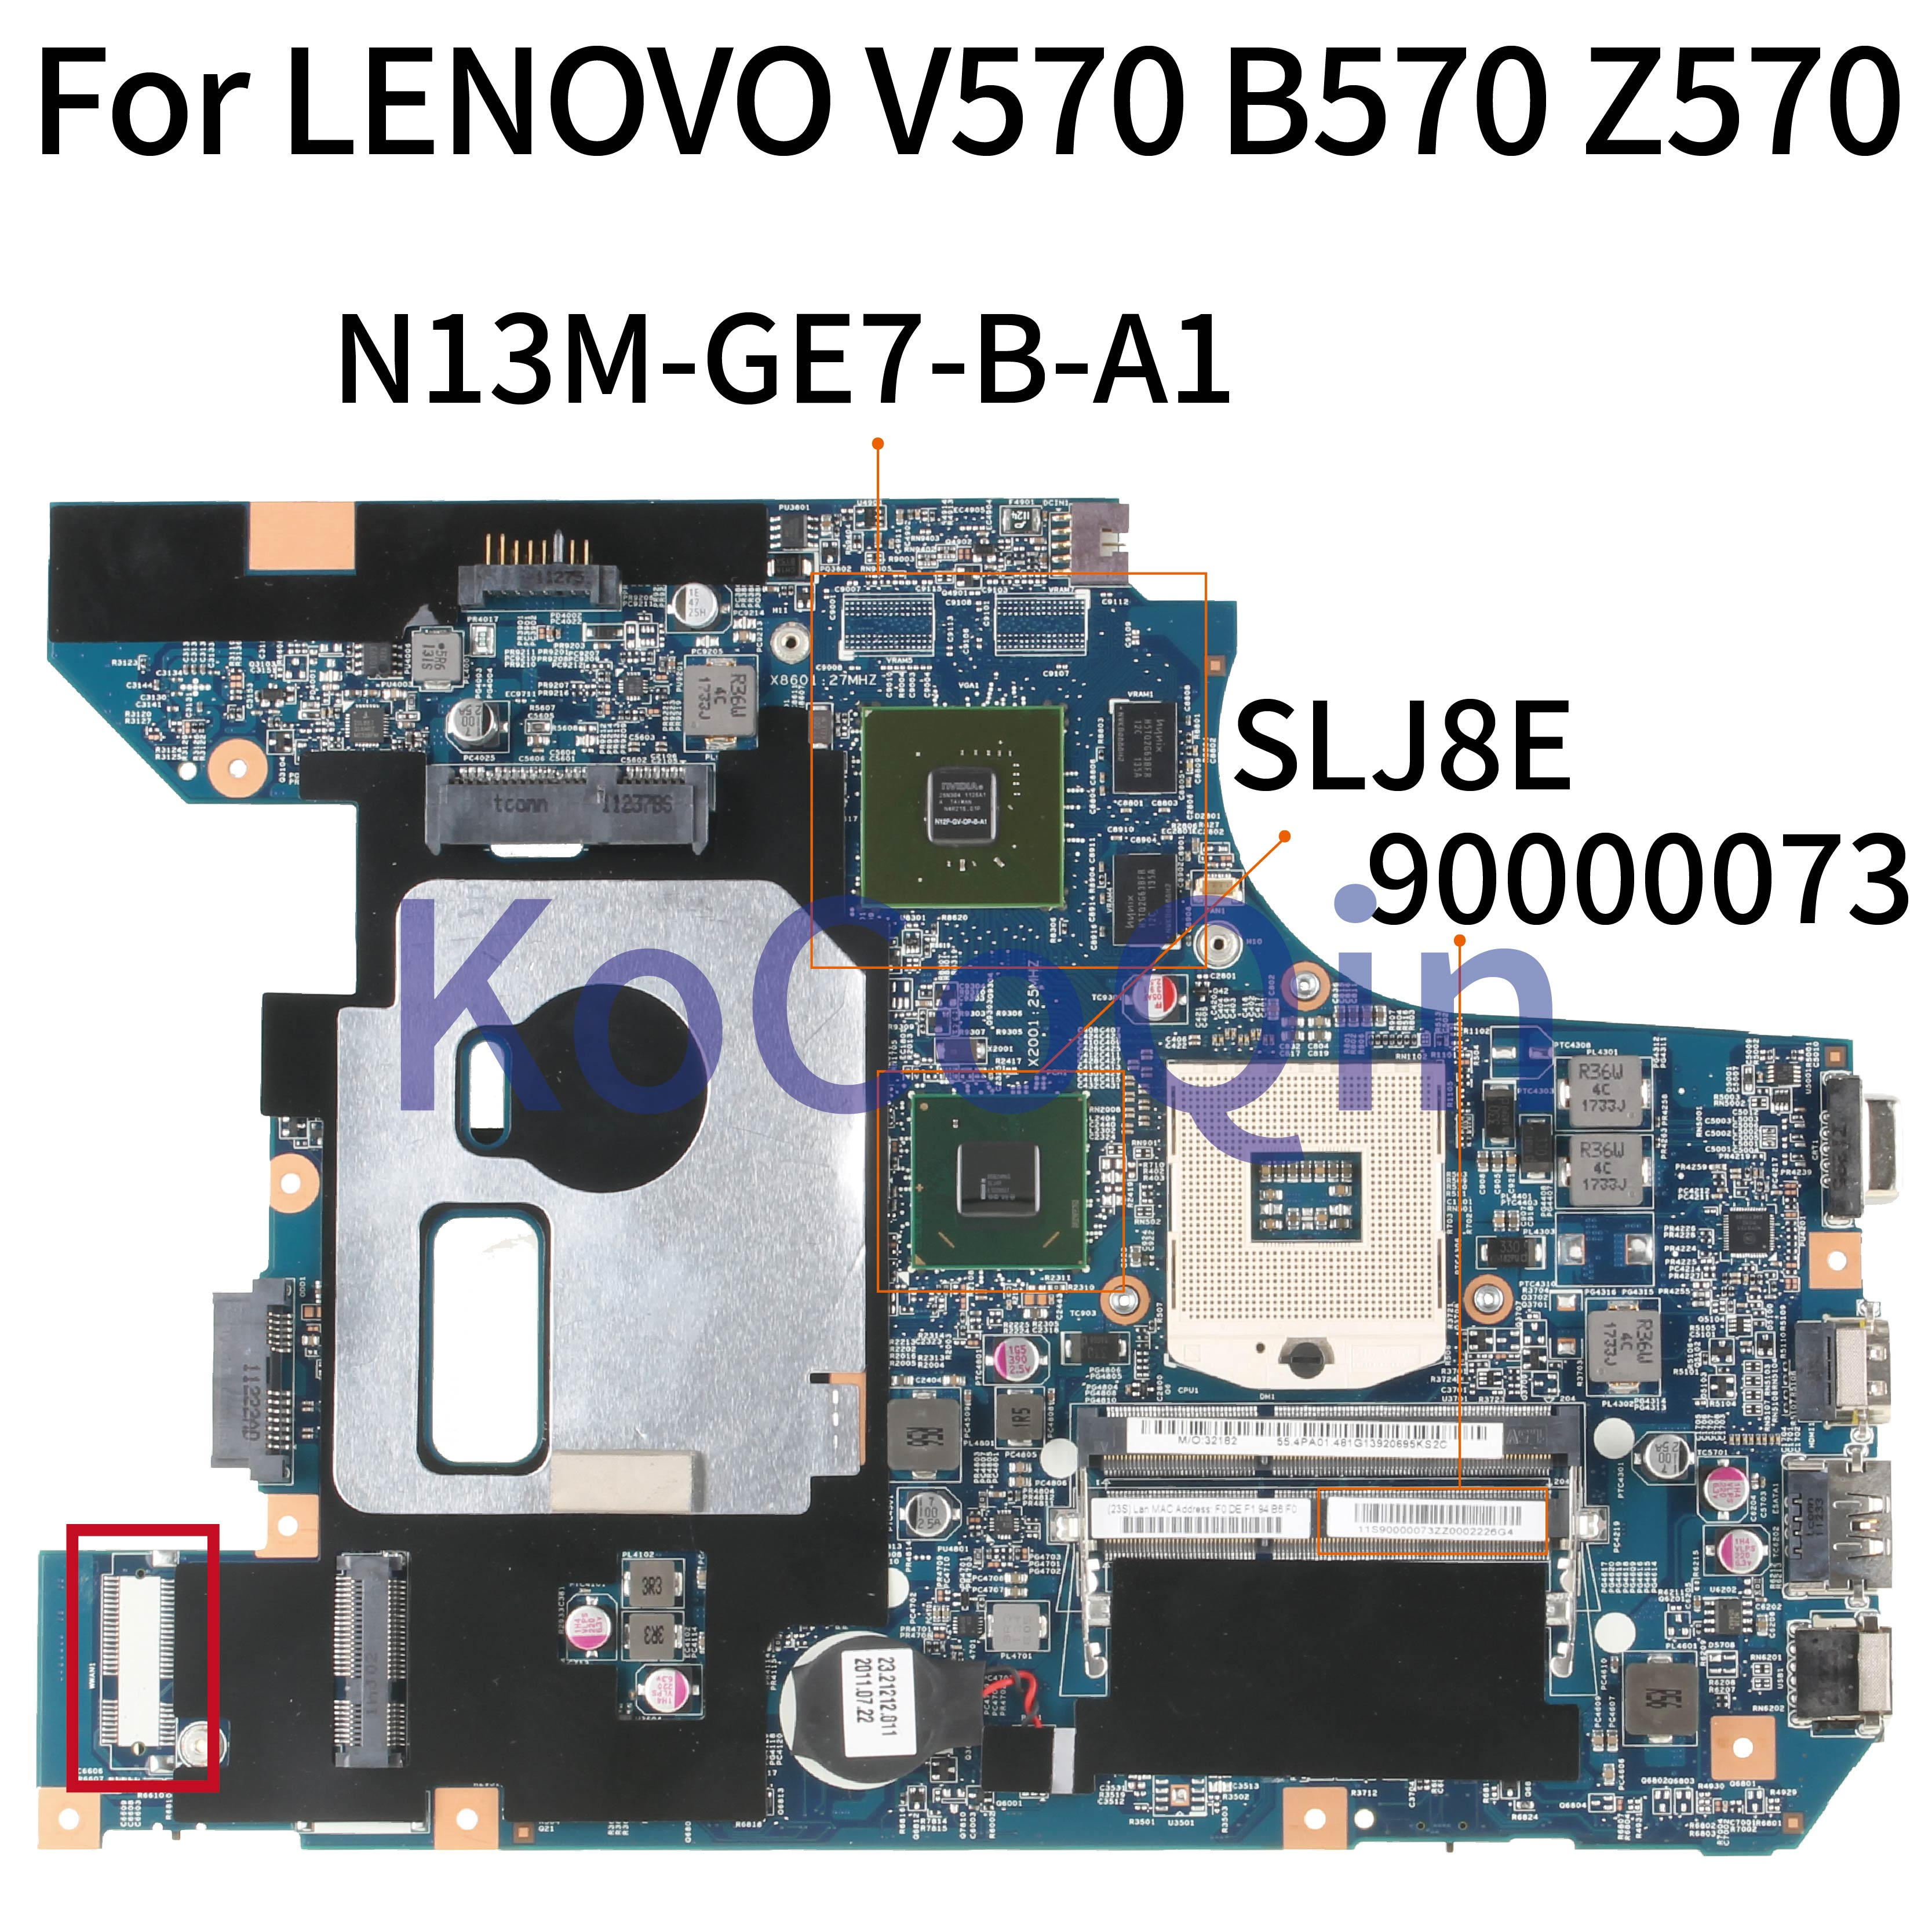 KoCoQin Laptop <font><b>motherboard</b></font> For <font><b>LENOVO</b></font> <font><b>V570</b></font> B570 Z570 10290-2 90000073 Mainboard HM65 N12P-GV-OP-B-A image